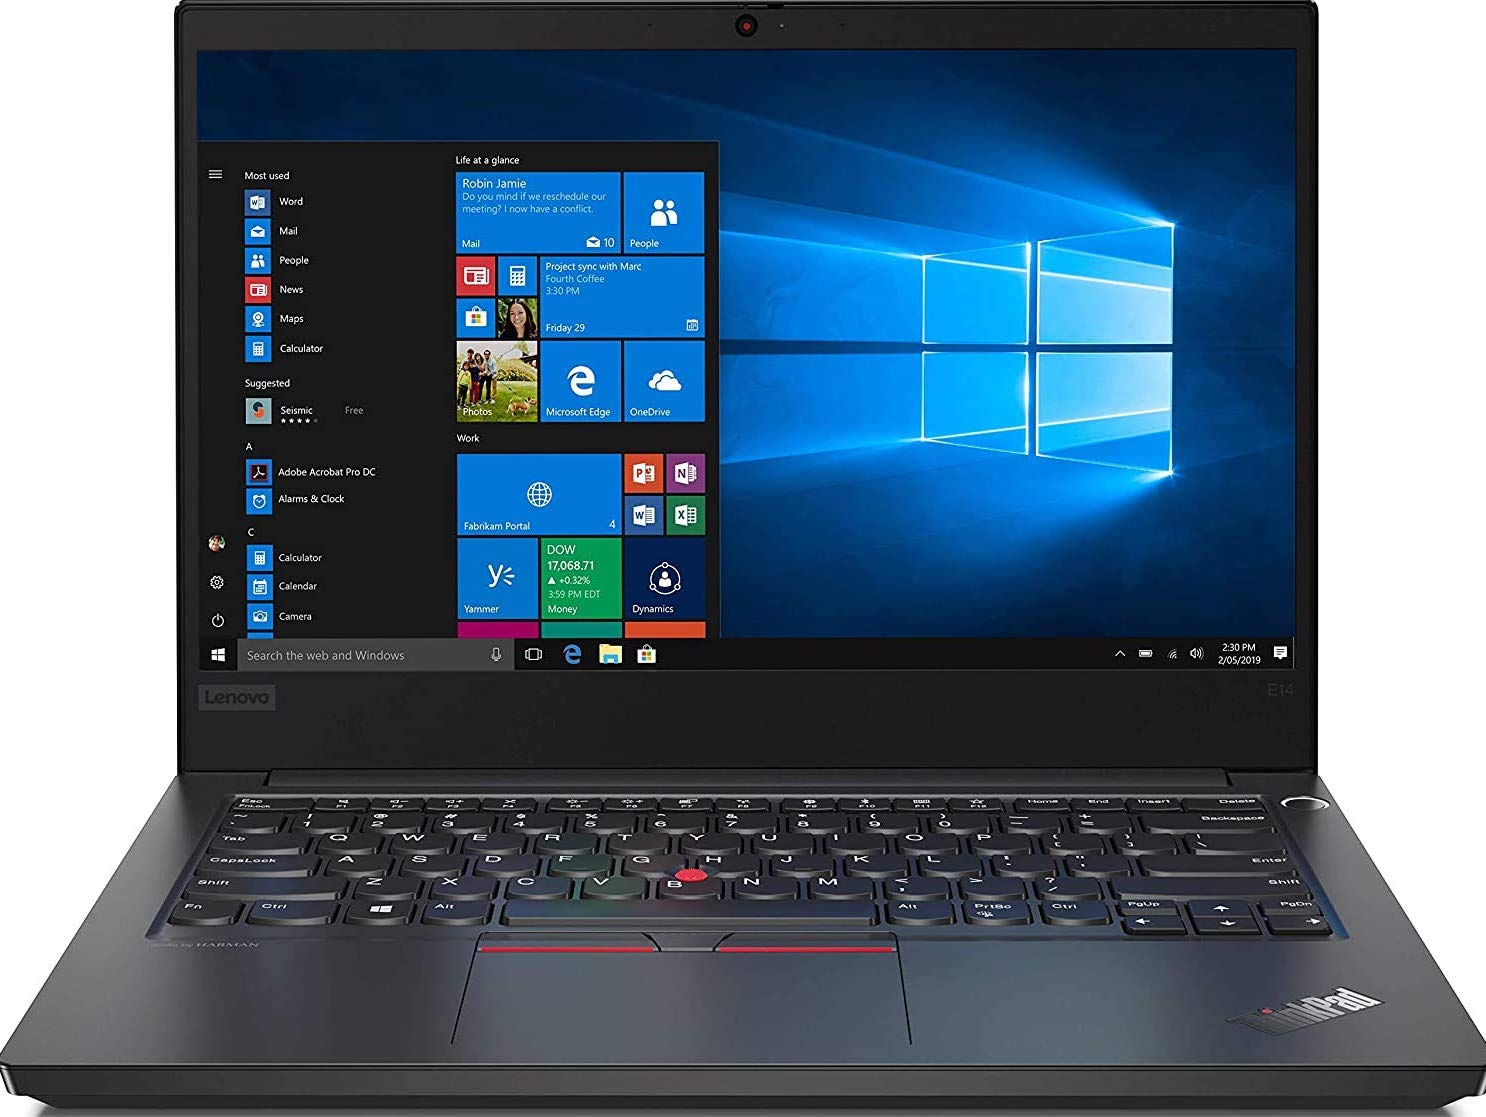 Lenovo ThinkPad E14 Intel Core i5 10th Gen 14-inch Full HD IPS Thin and Light Laptop (8GB RAM/ 1TB HDD + 128GB SSD/ Windows 10 Home/ Microsoft Office Home & Student 2019/ Black/ 1.69kg), 20RAS0W500